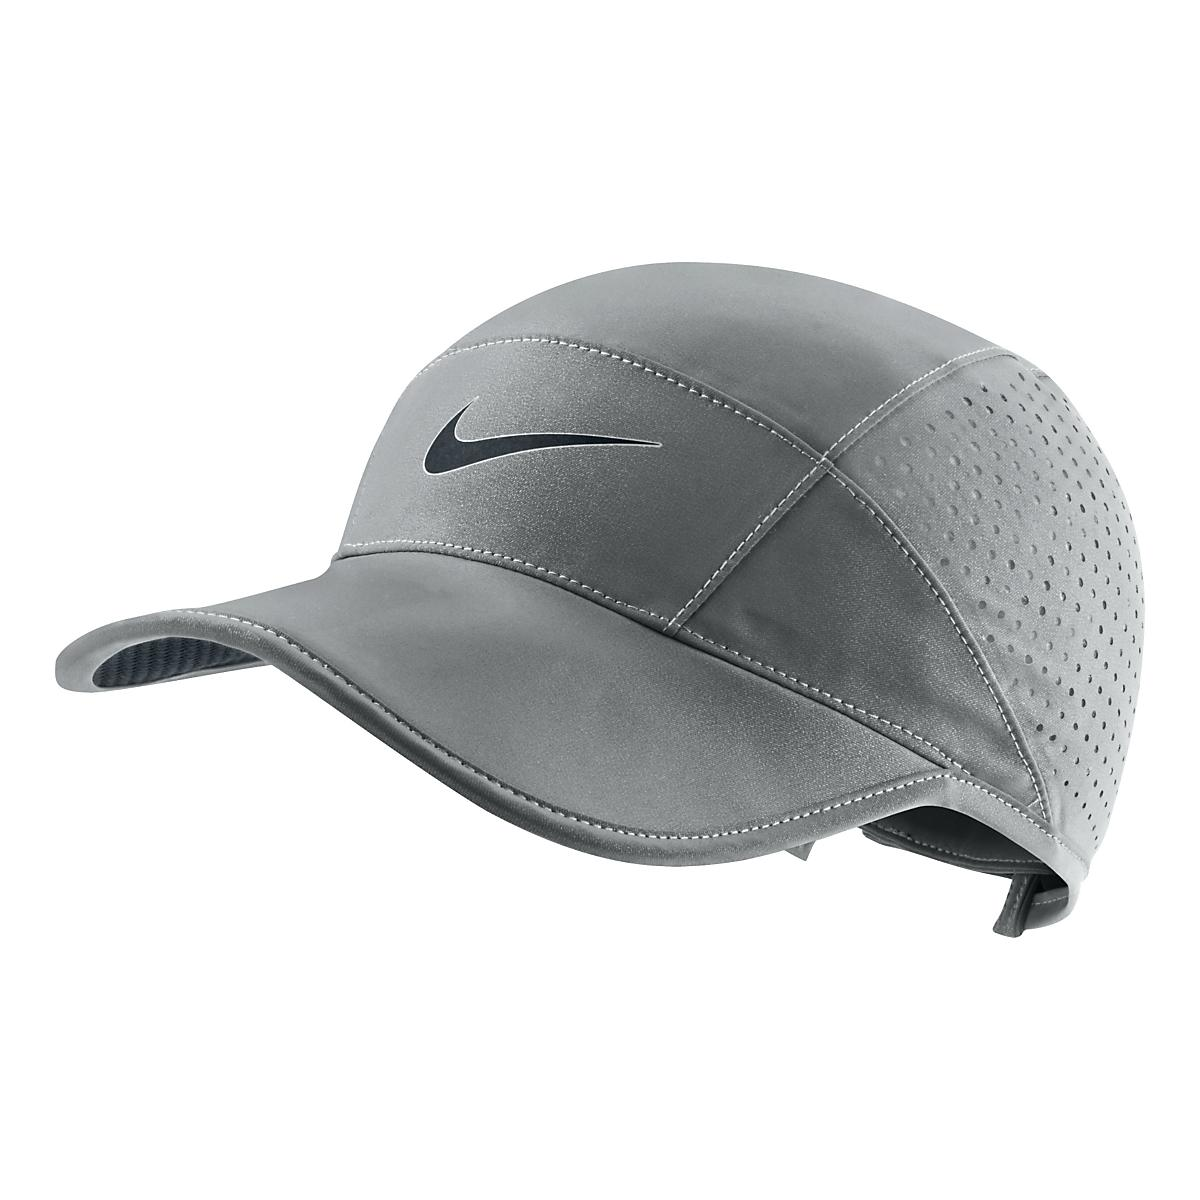 Nike Superfly Reflective Hat Headwear at Road Runner Sports 9099f8c0d370